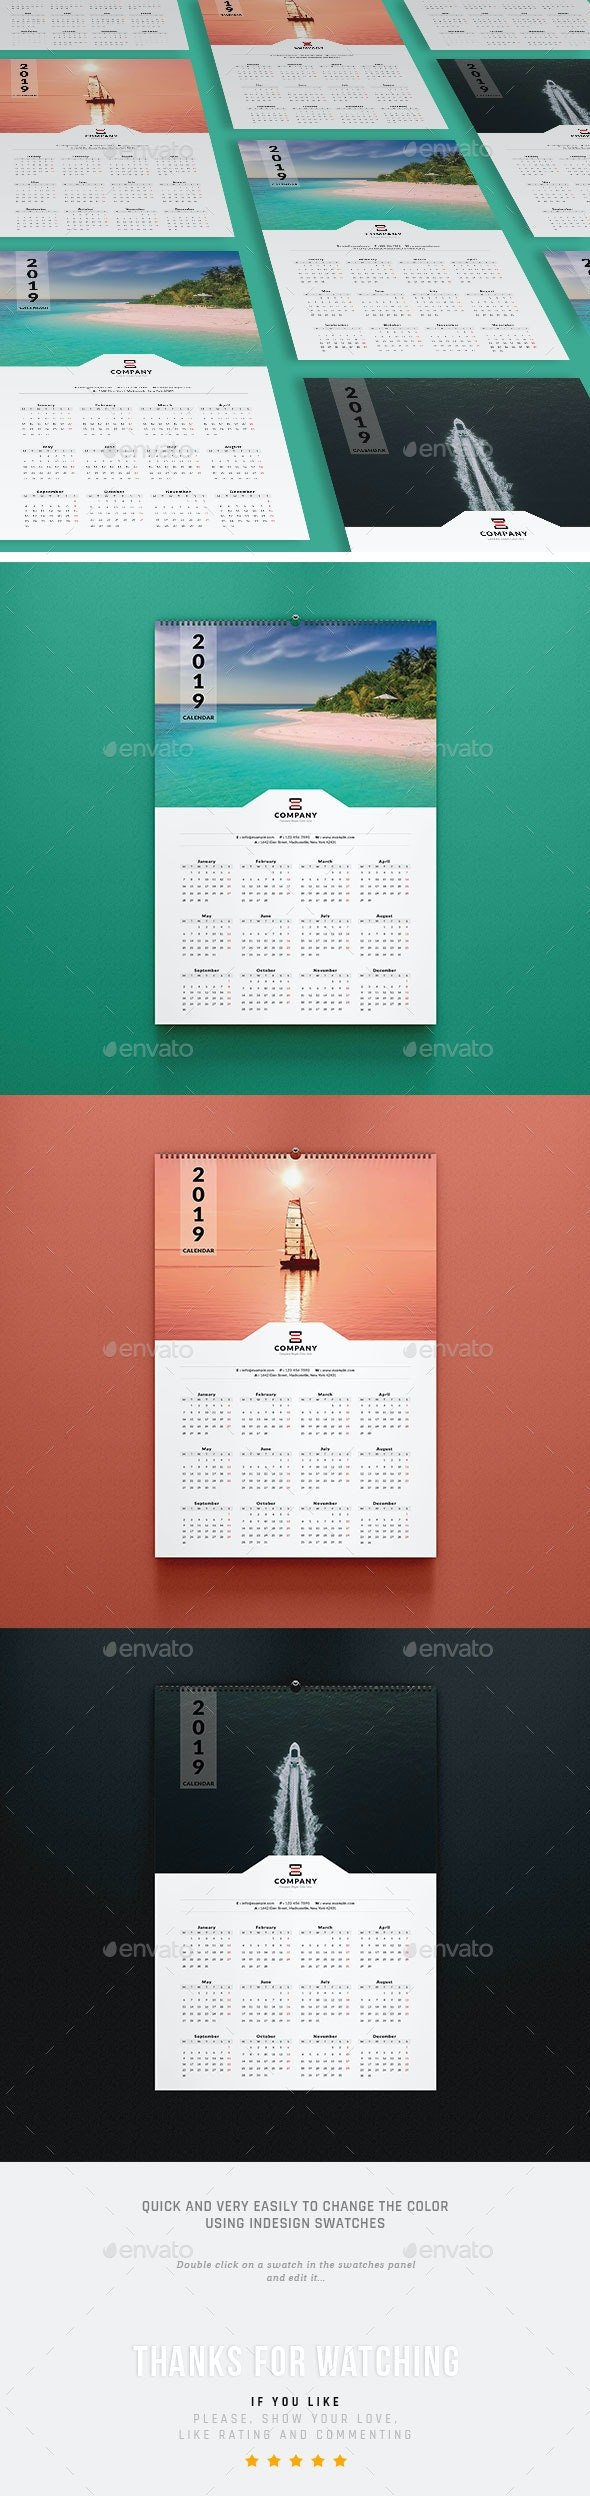 2019 One Page Wall Calendar - Calendars Stationery